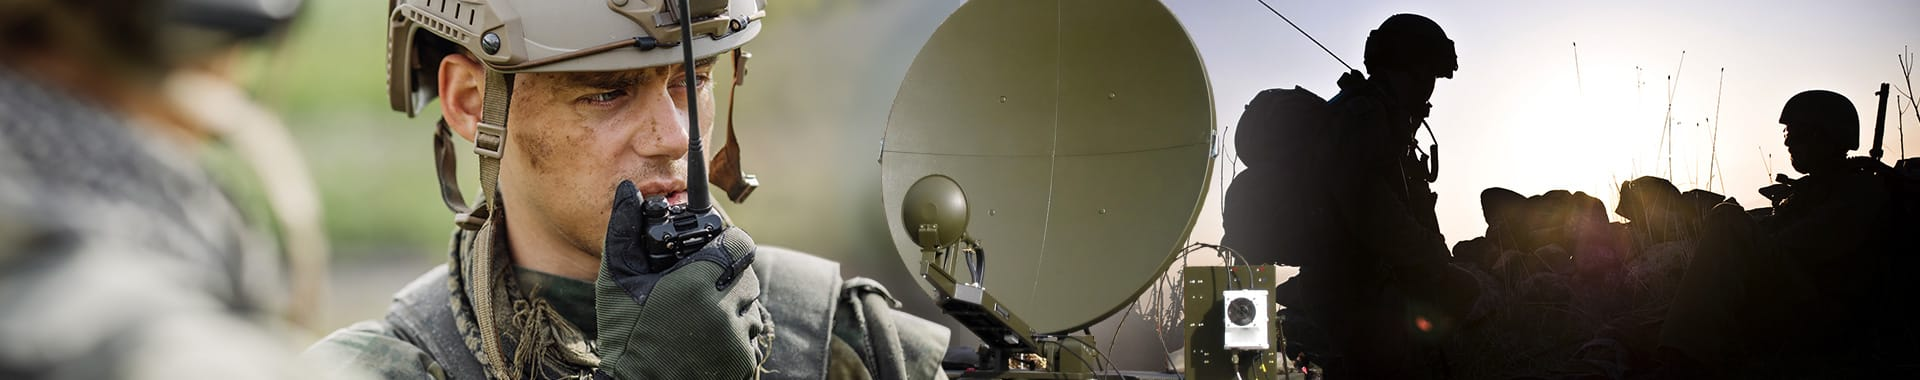 Montage showing a soldier speaking into a radio, a comms dish and soldier with a wireless pack - conveying the Government and Defence market